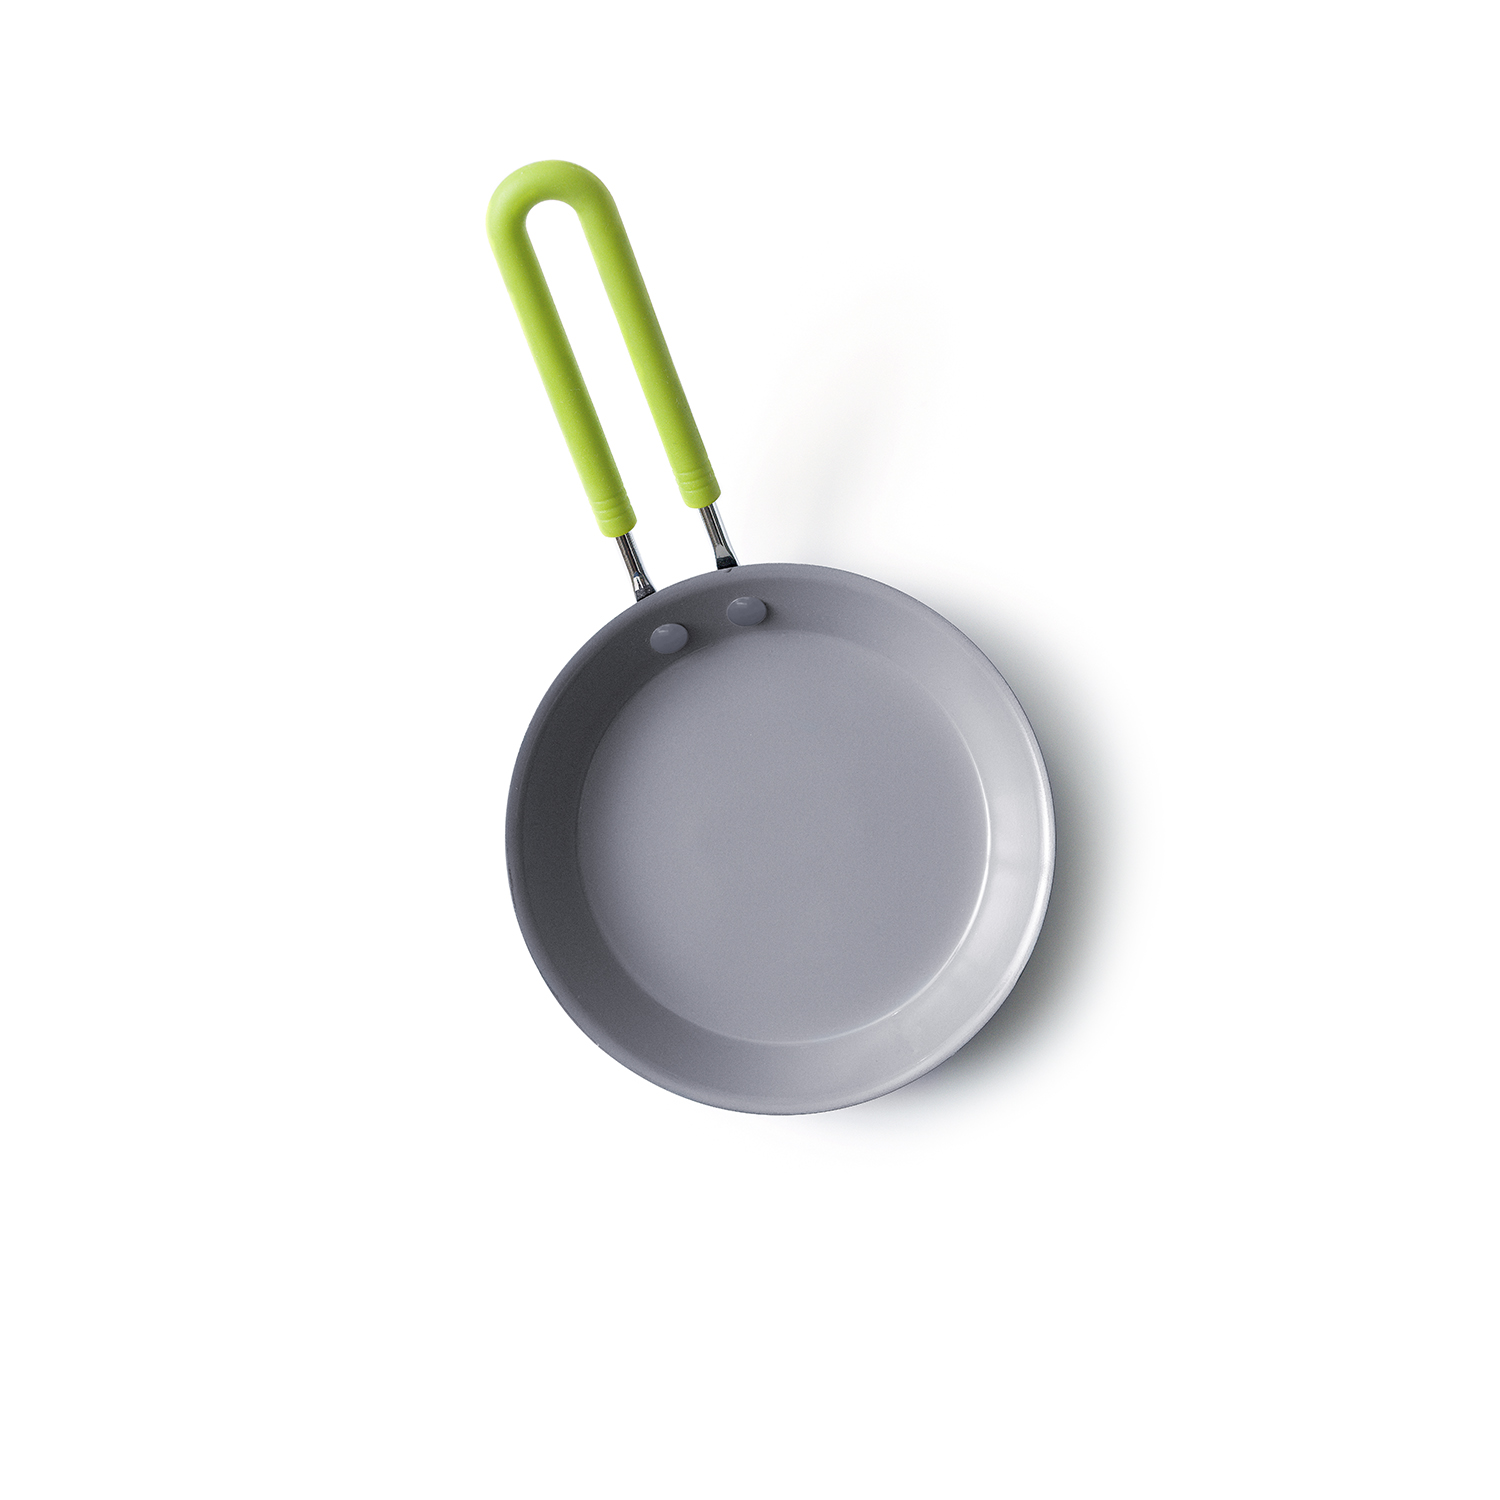 Image of GreenPan 12.5cm Round Open Frying Pan